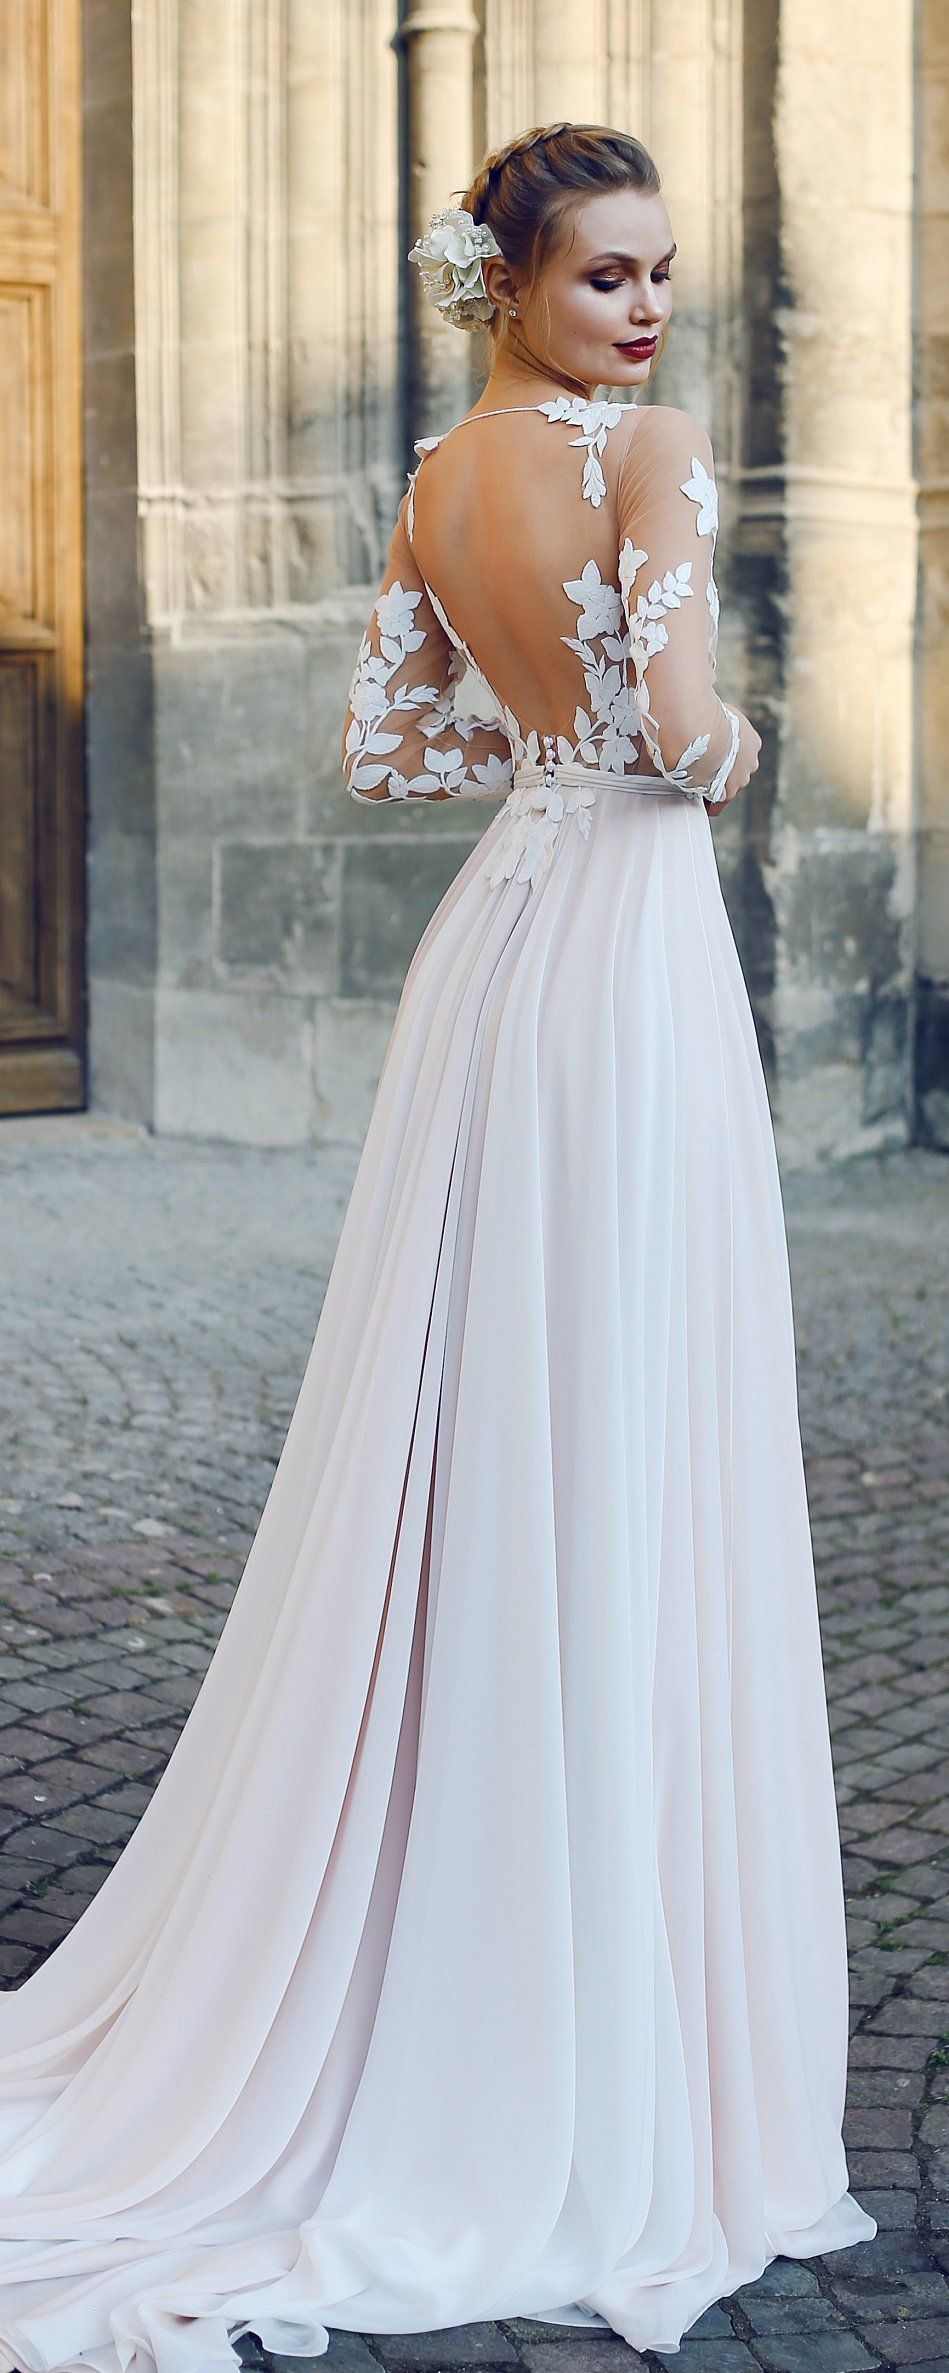 Aline backless wedding dress filisi with long train by ange etoiles